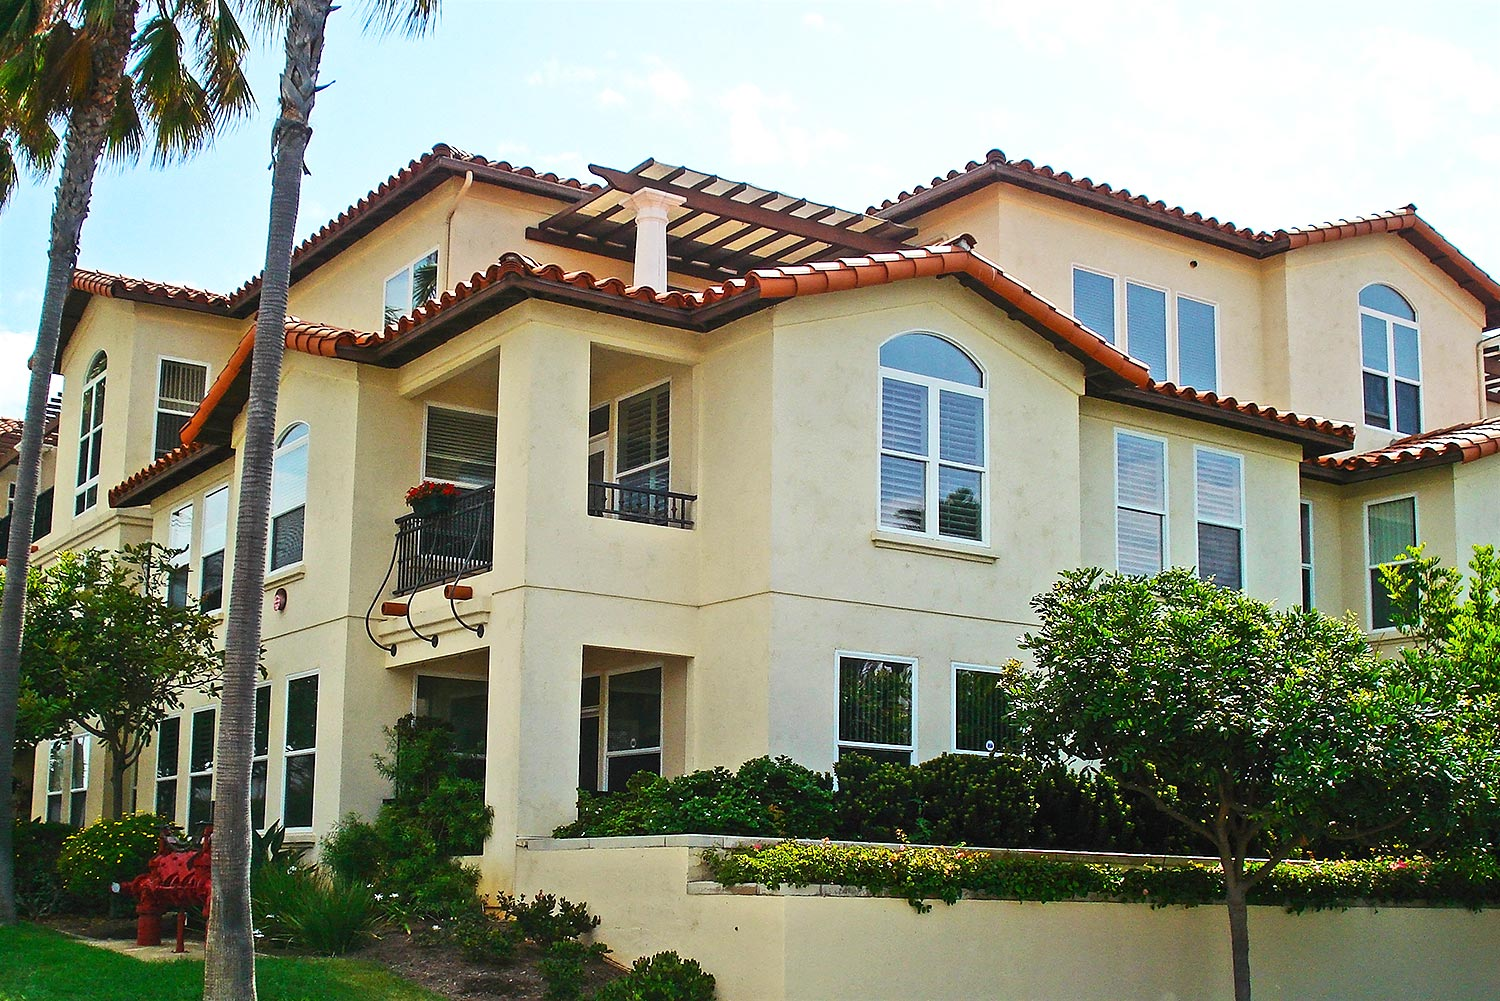 Carlsbad by the Sea building exterior